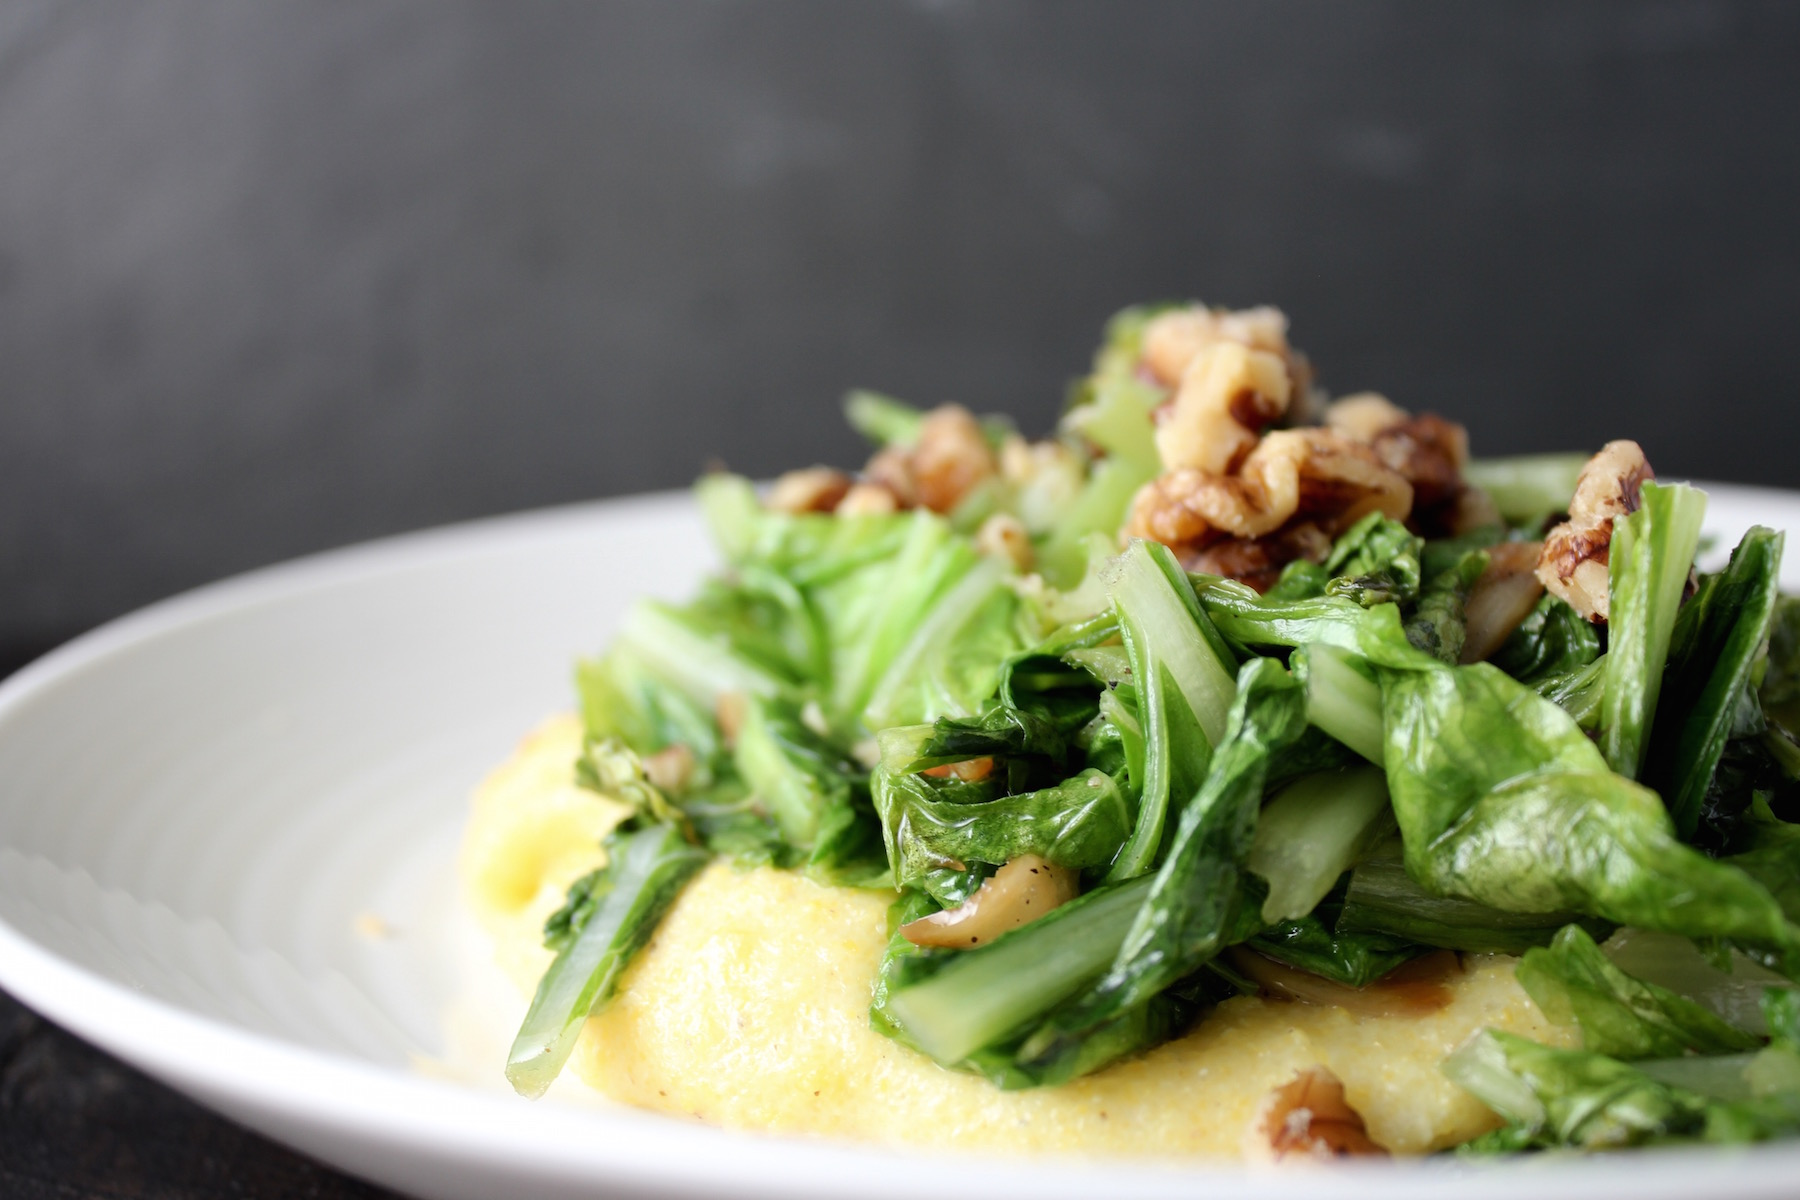 Komatsuna with polenta and walnuts